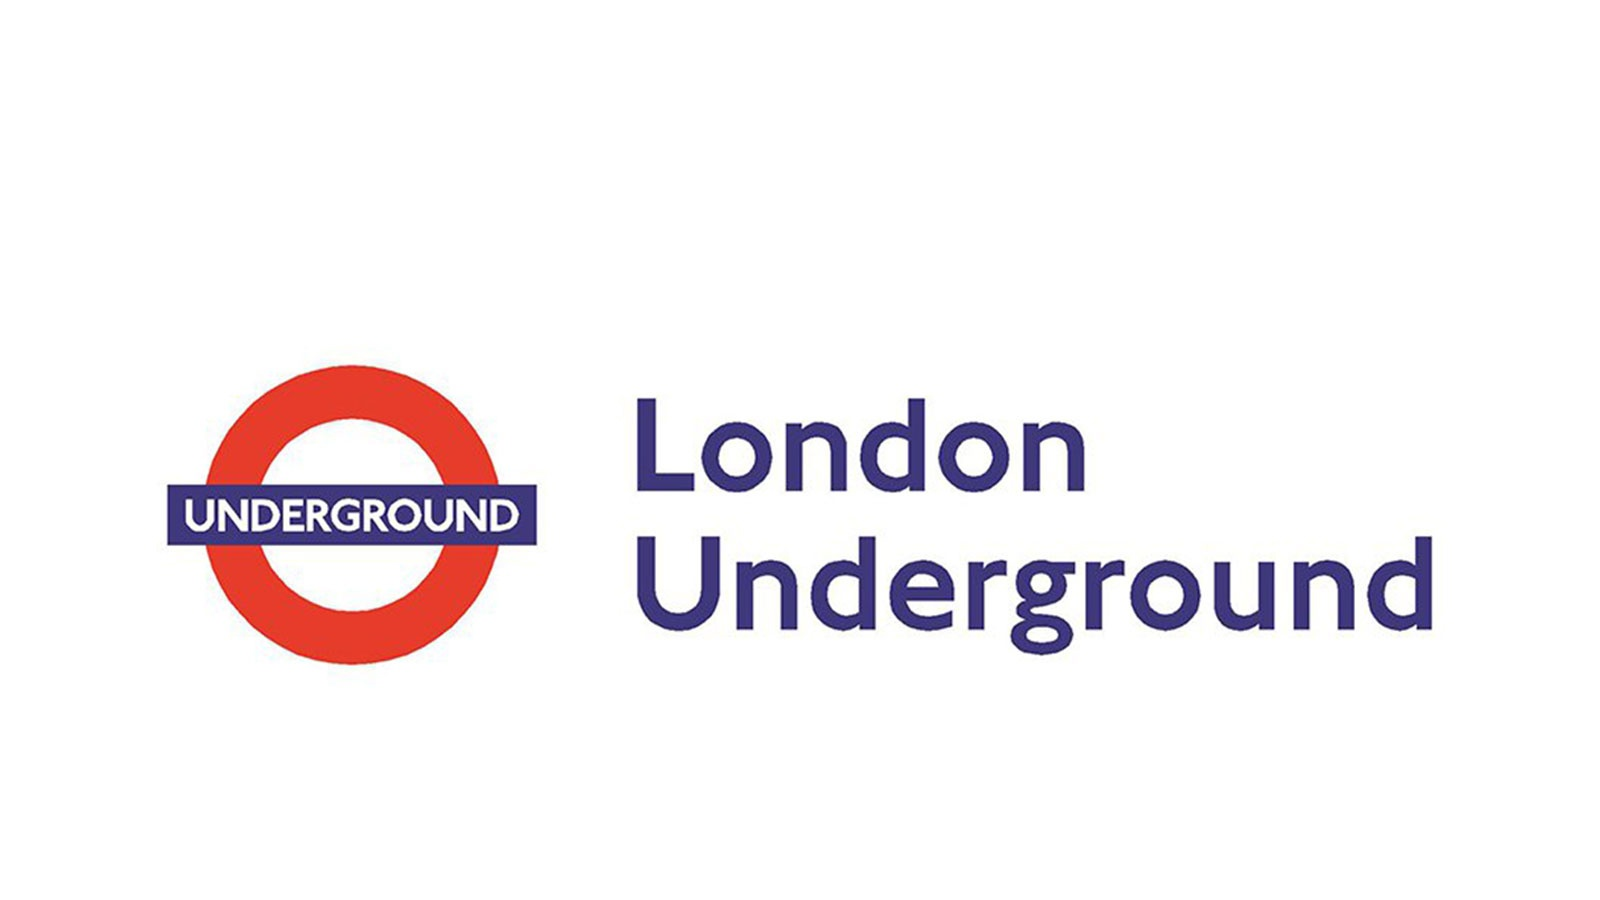 Asite to help in transforming the Tube